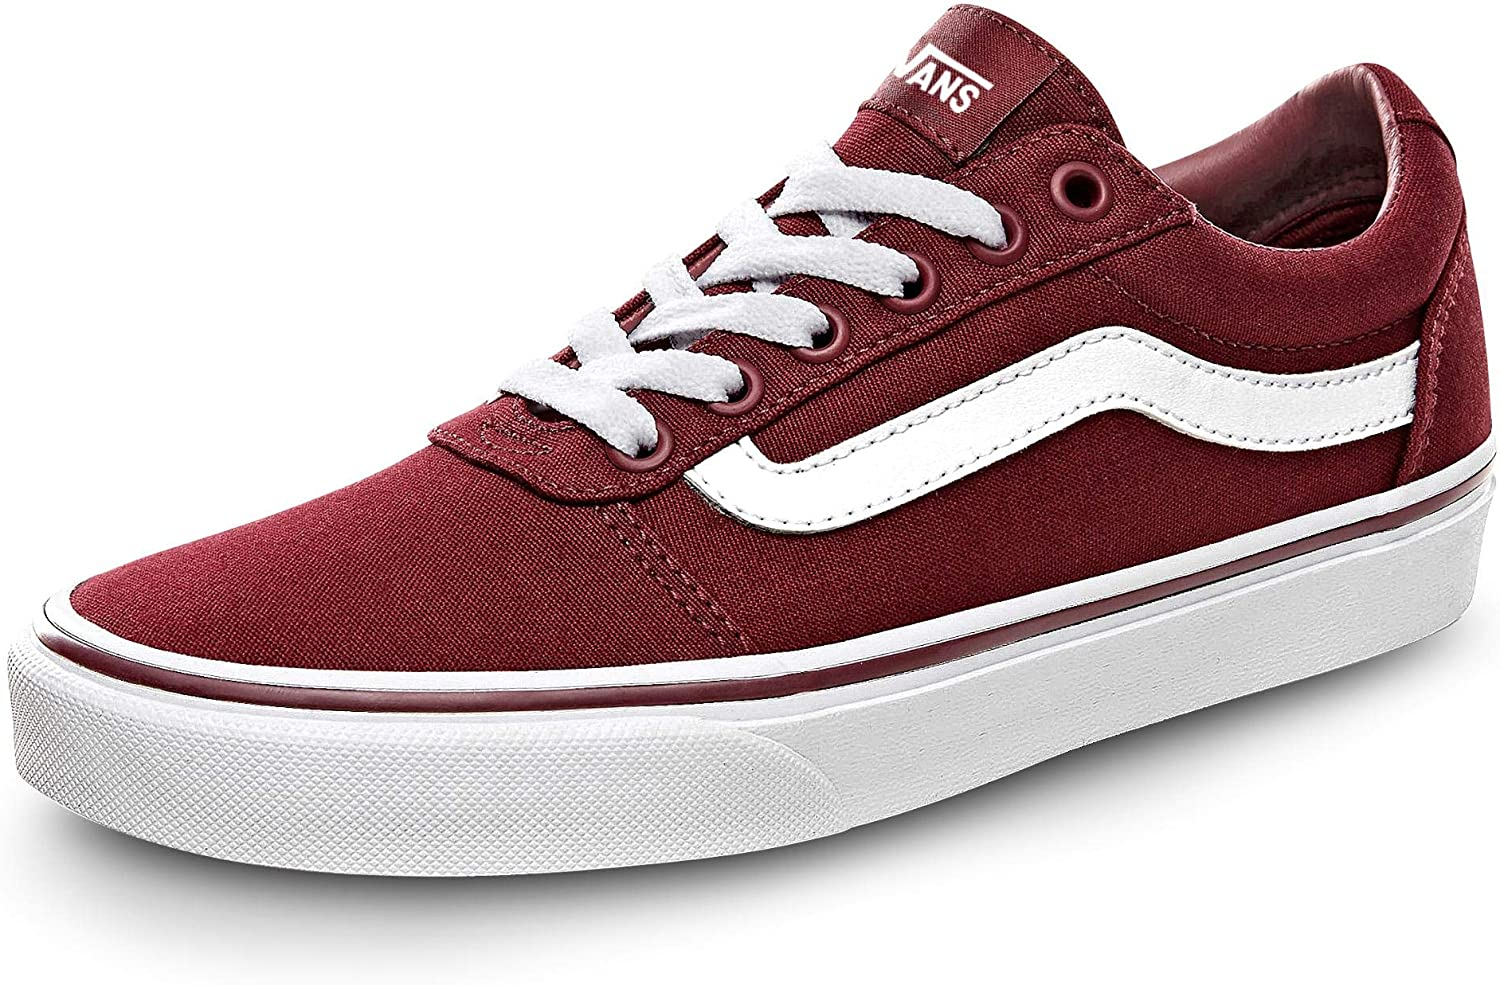 Ward Canvas Low-Top Sneakers